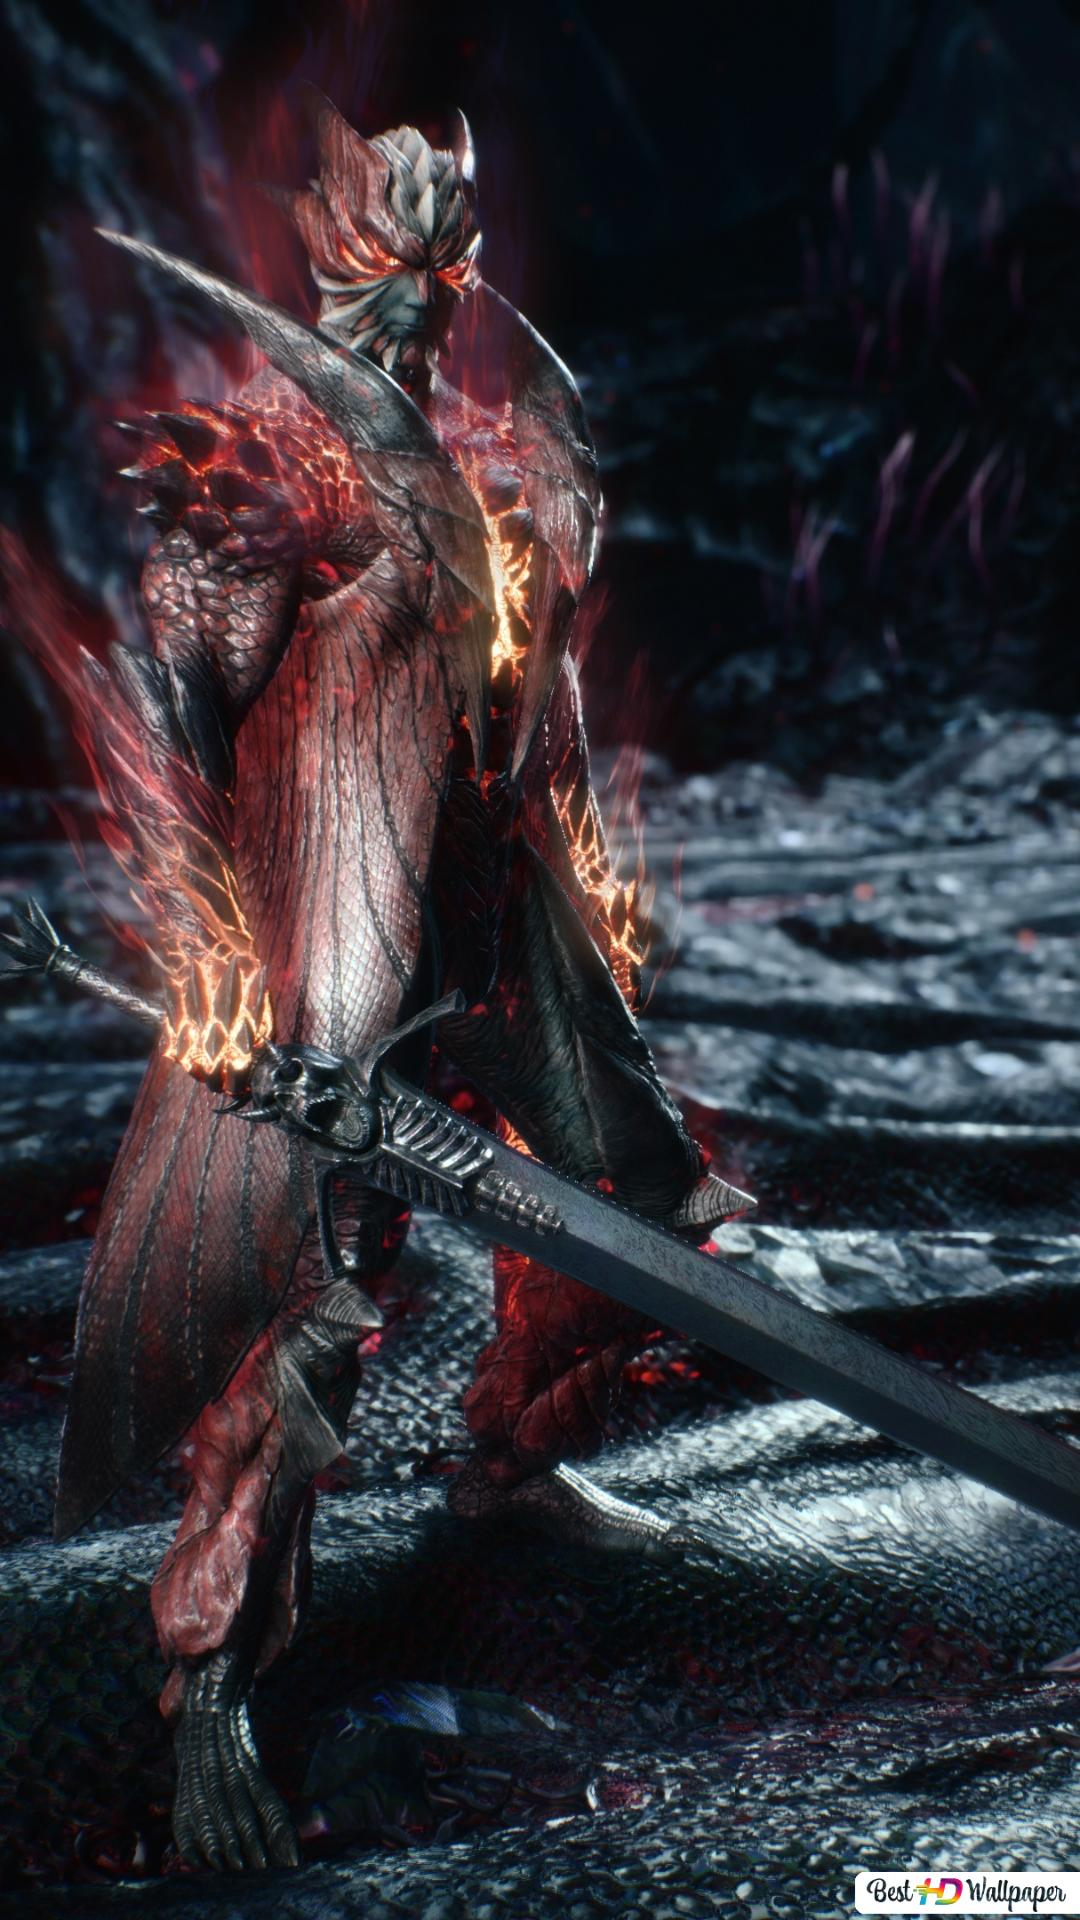 Devil May Cry 5 Dante Devil Trigger Rebellion Sword Hd Wallpaper